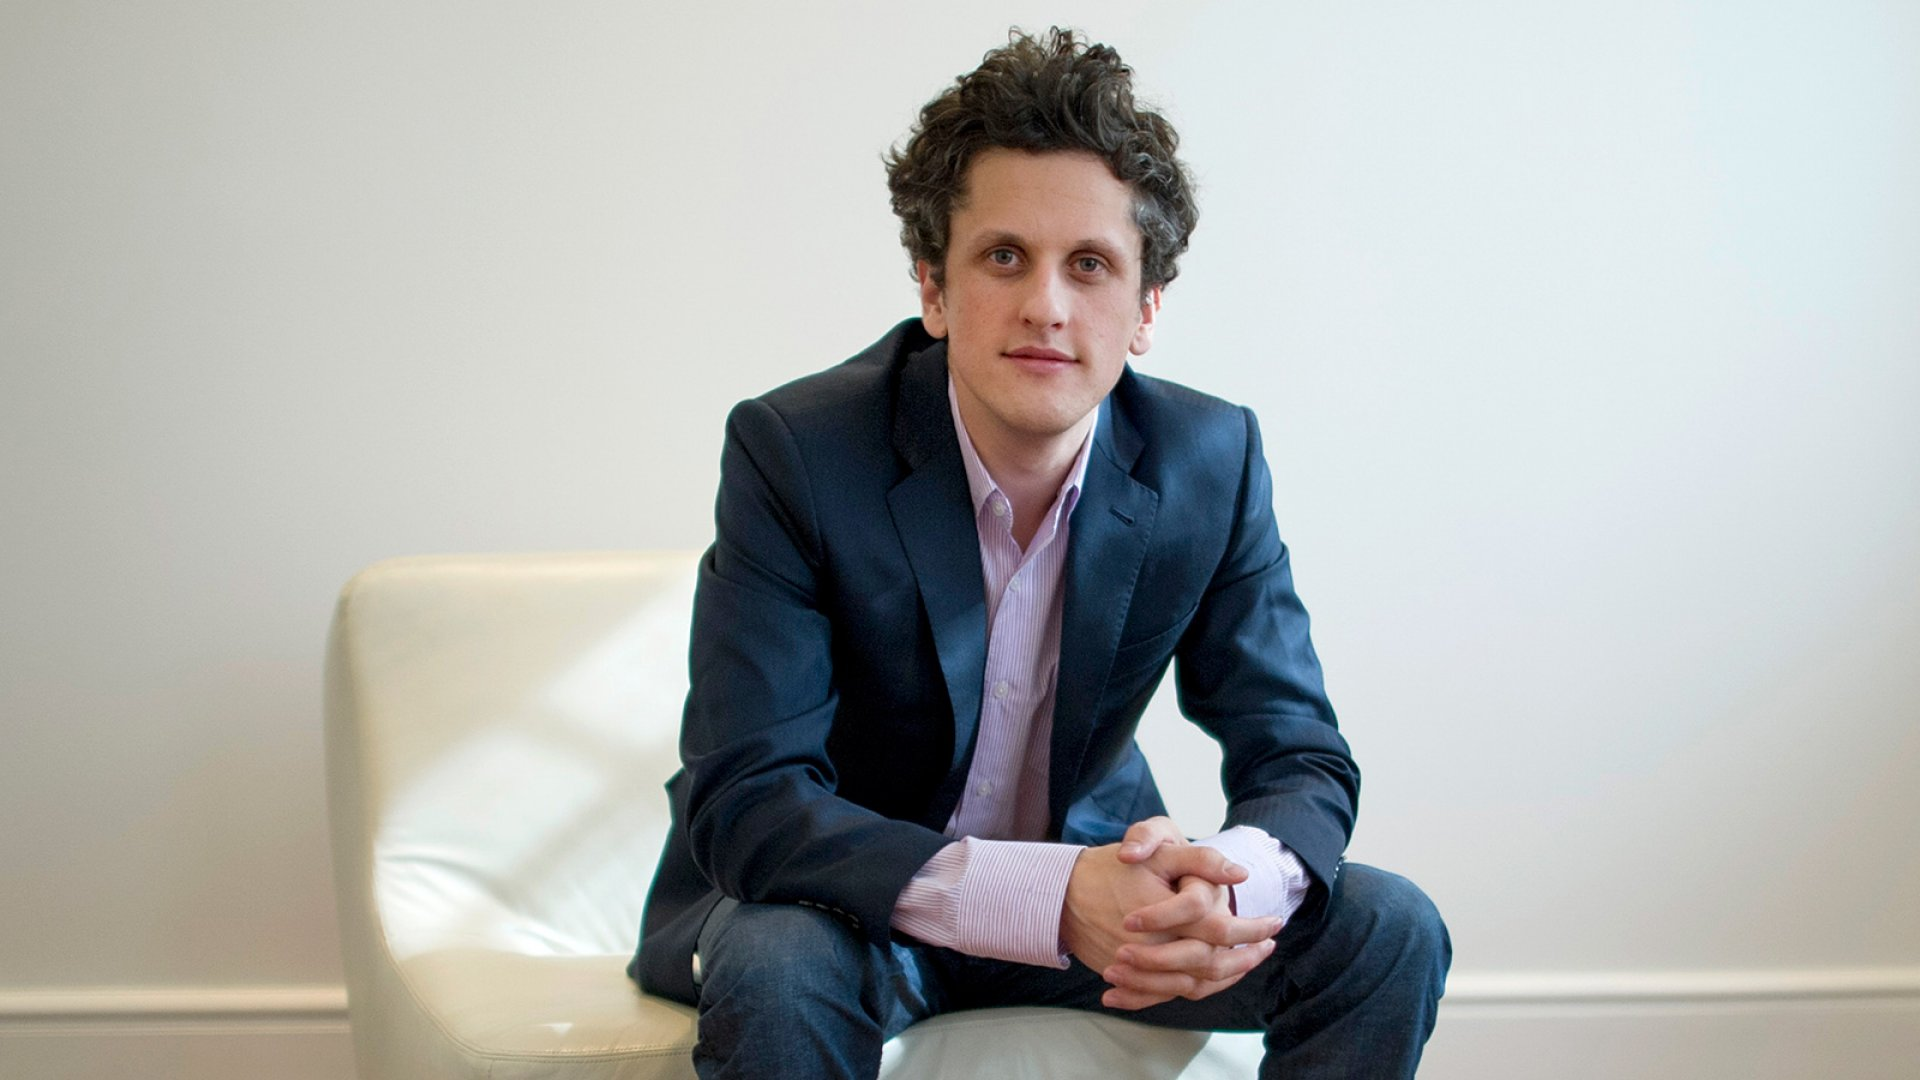 Box CEO Aaron Levie on How to Be a Great Mentor